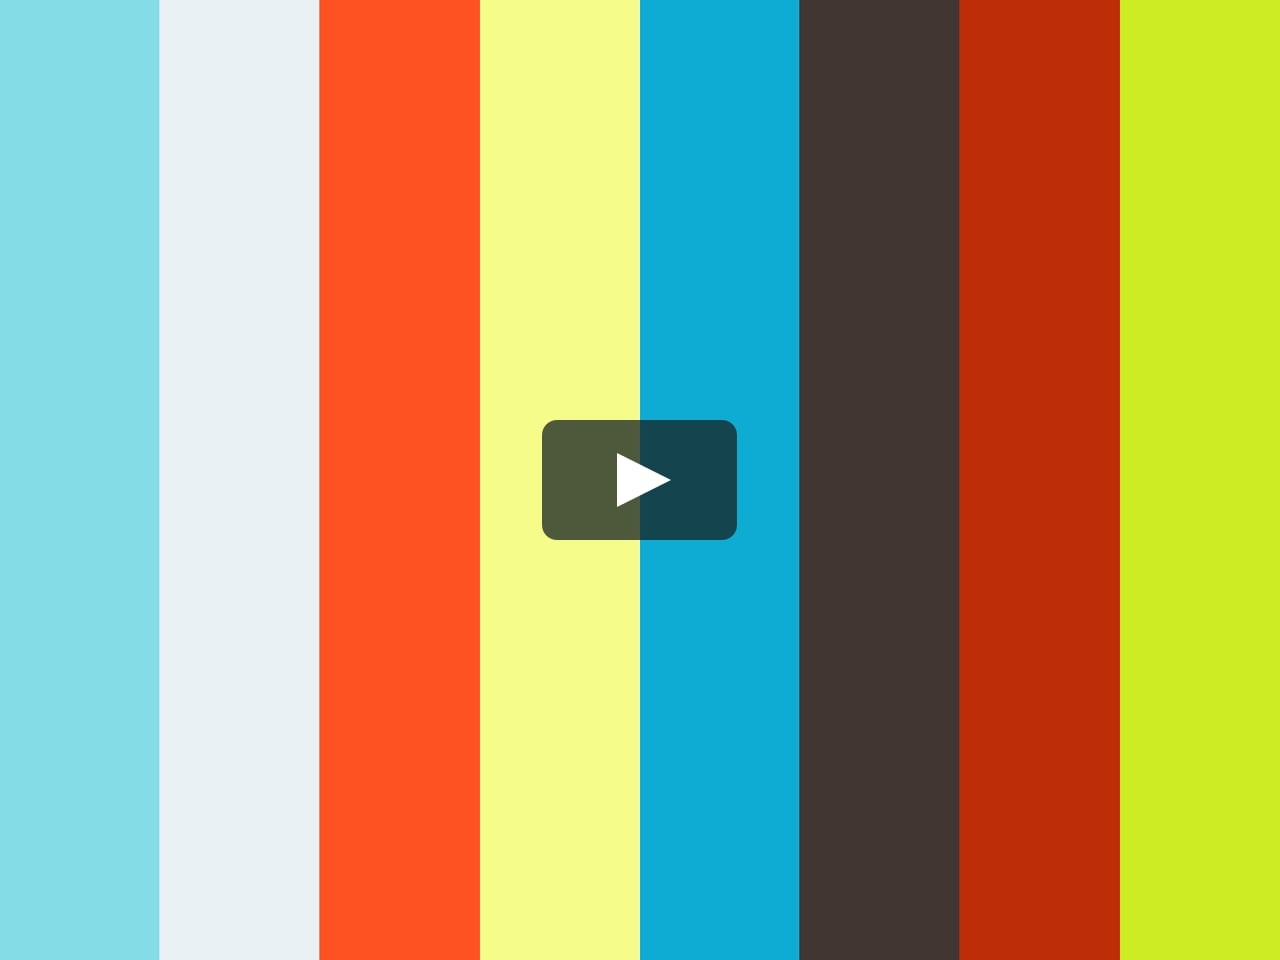 $500 For Running Cars (Top dollar For Junk Cars) on Vimeo